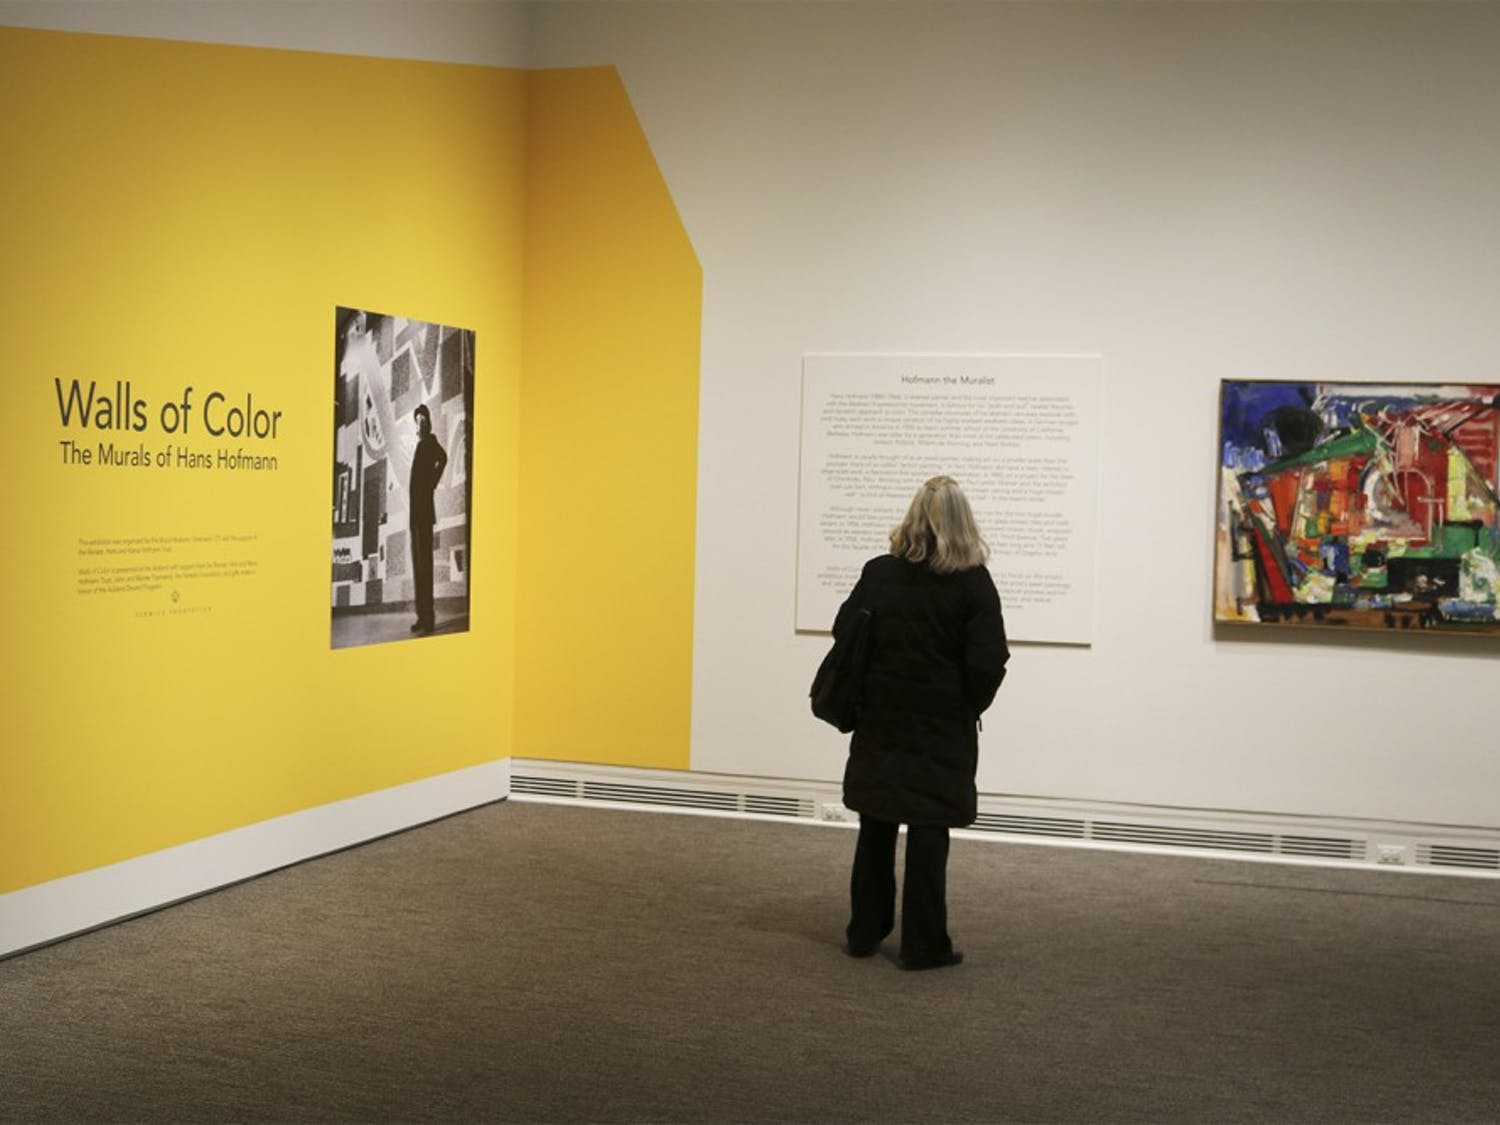 Susan Mcmichaels, a member of the Chapel Hill community, observing the exhibit Walls Of Colors: The Murals of Hans Hofmann, opened at the Ackland Art Museum until Apr. 10th.